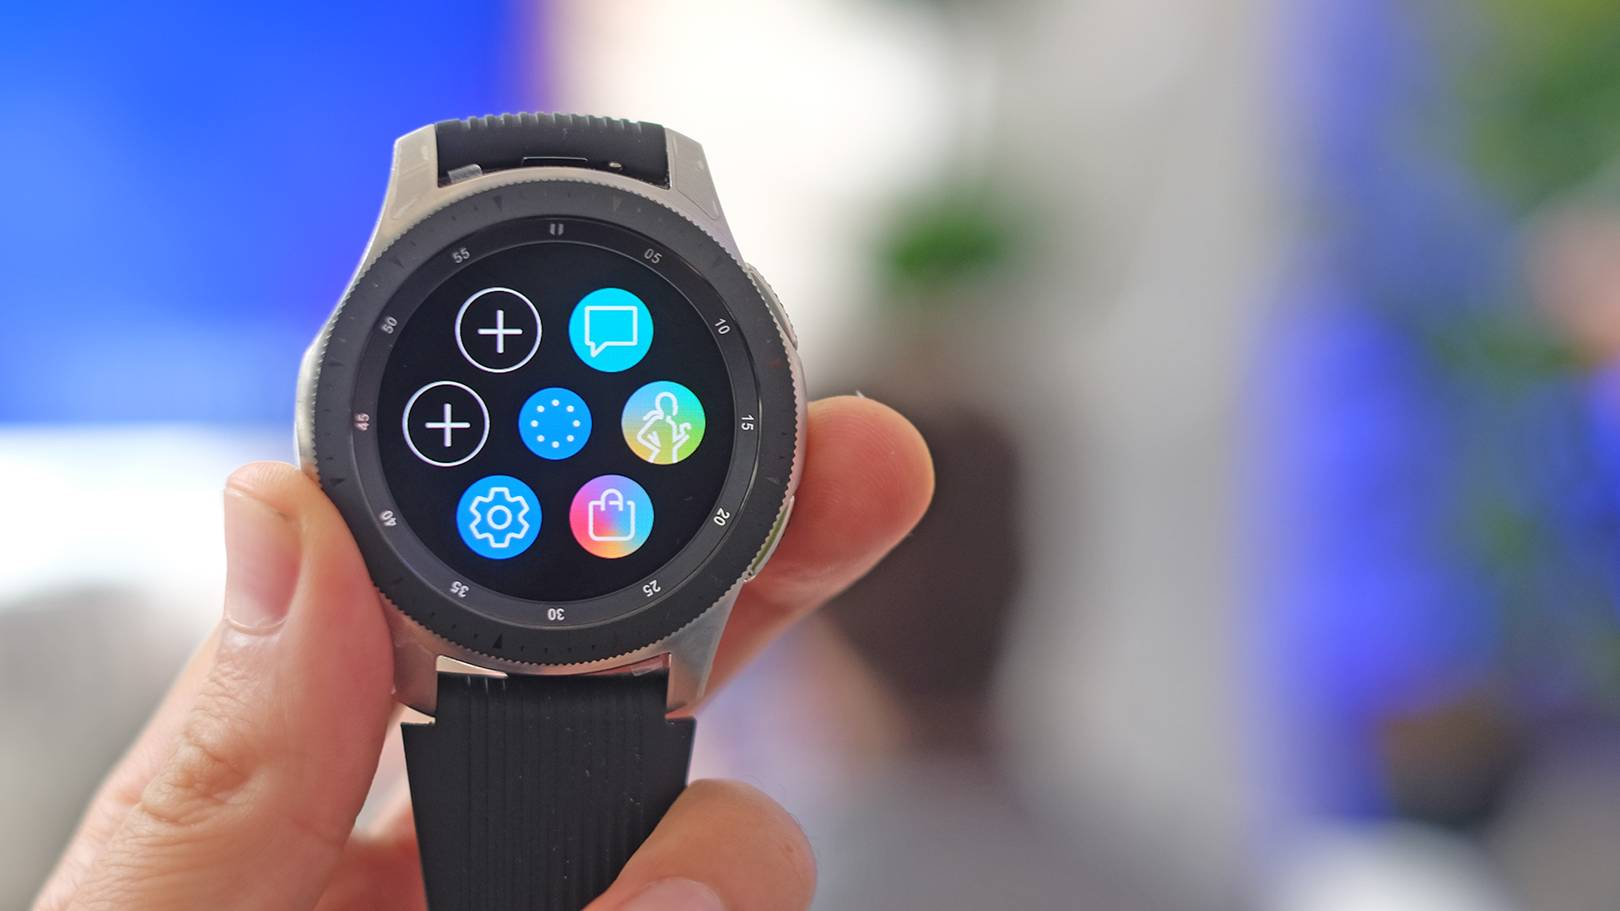 Samsung Galaxy Watch hands-on: still let down by a lack of